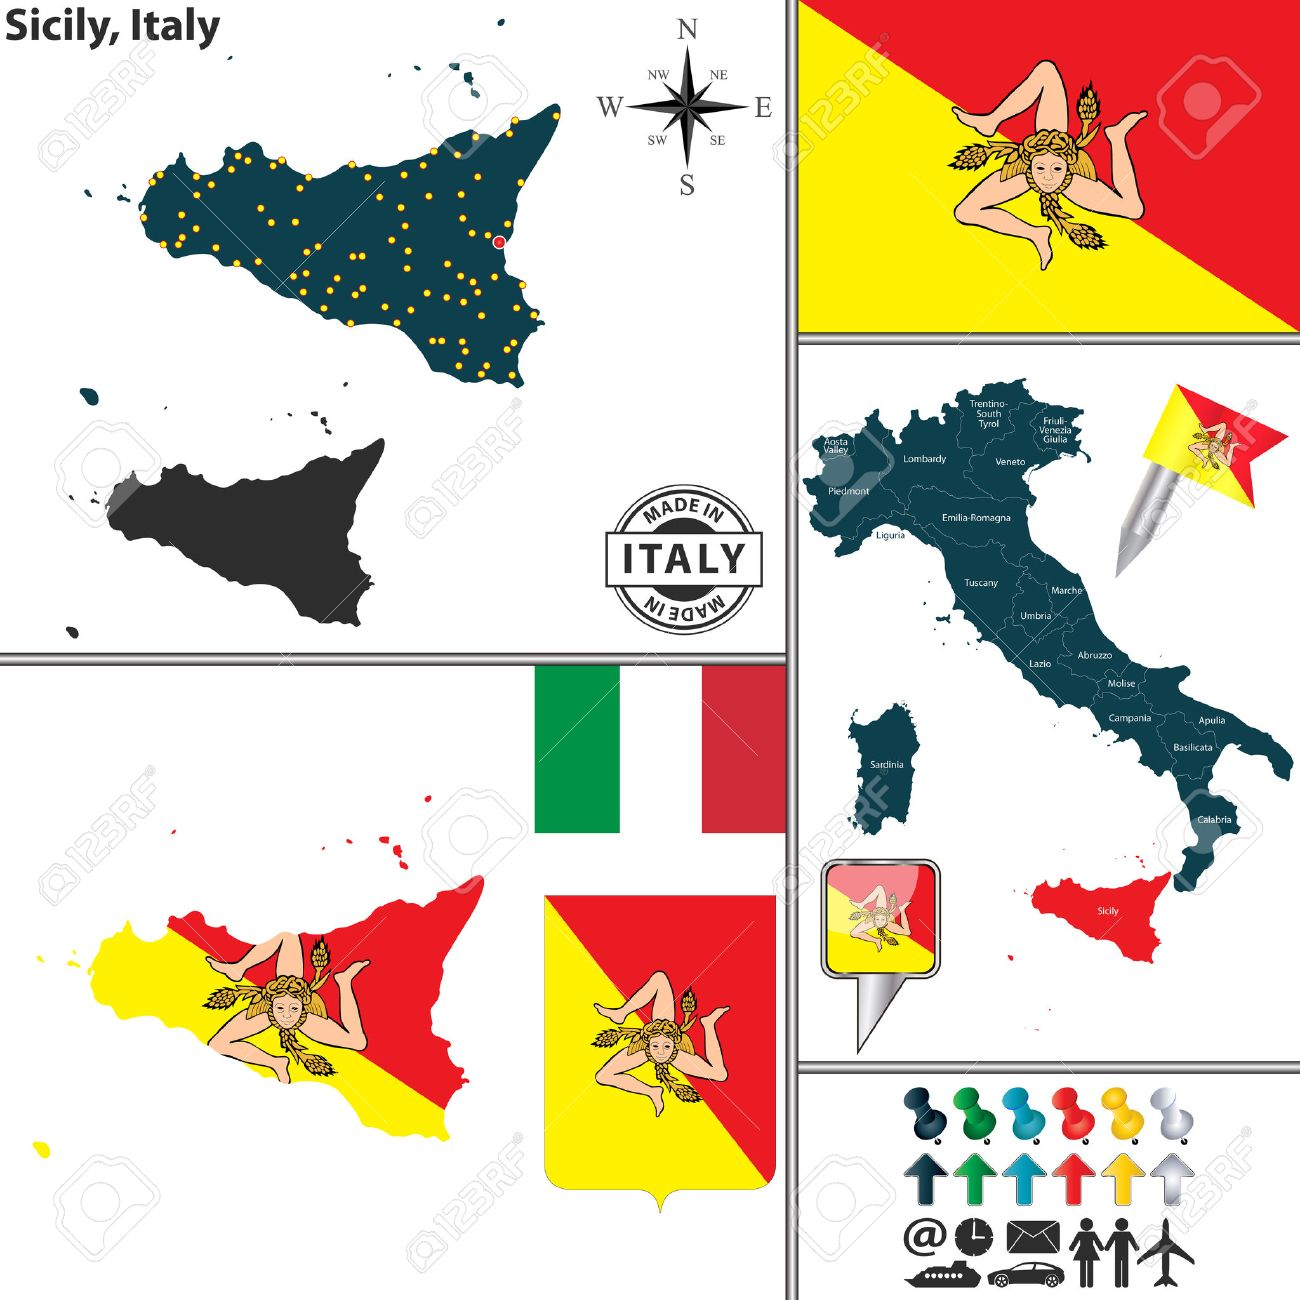 Vector Map Of Region Sicily With Coat Of Arms And Location On Italy